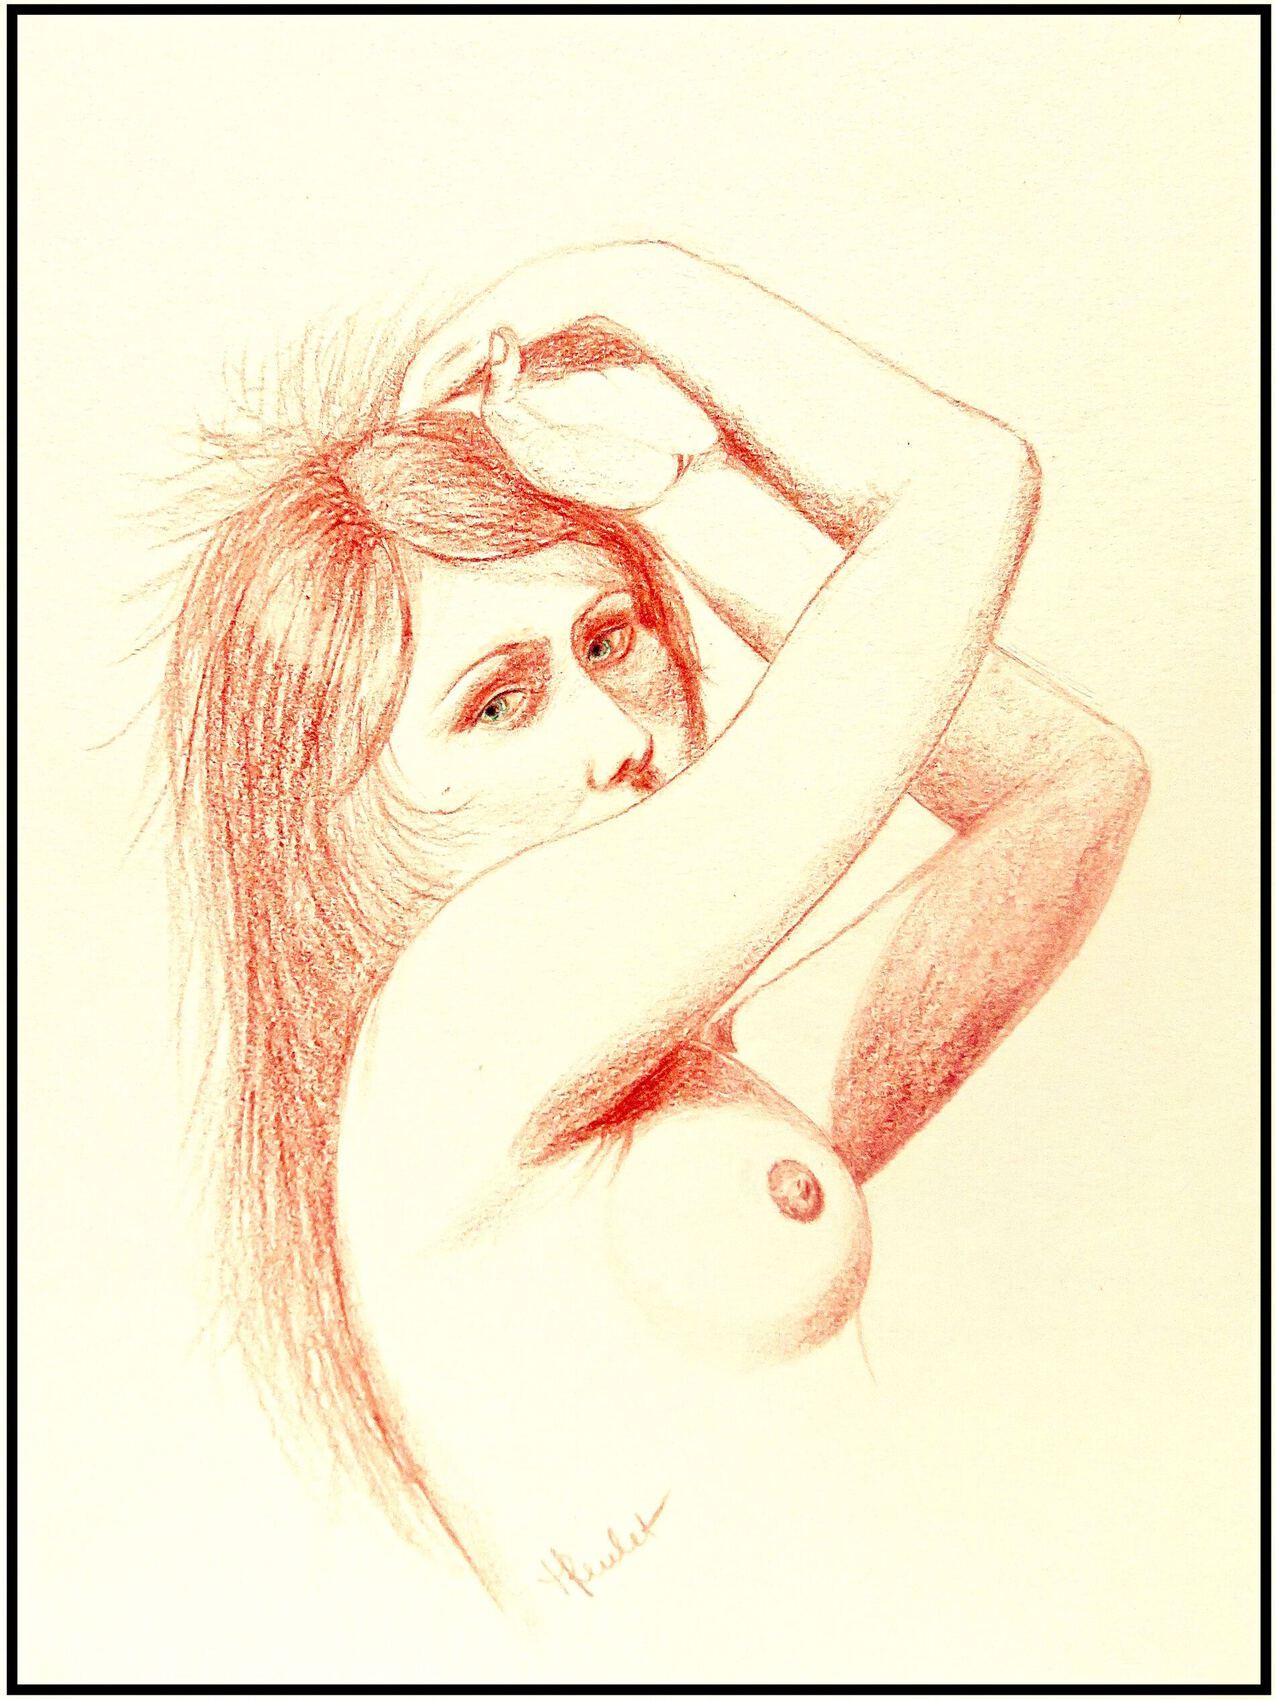 Femme allongée nue s'éveillant / Drawing Woman lying naked waking up